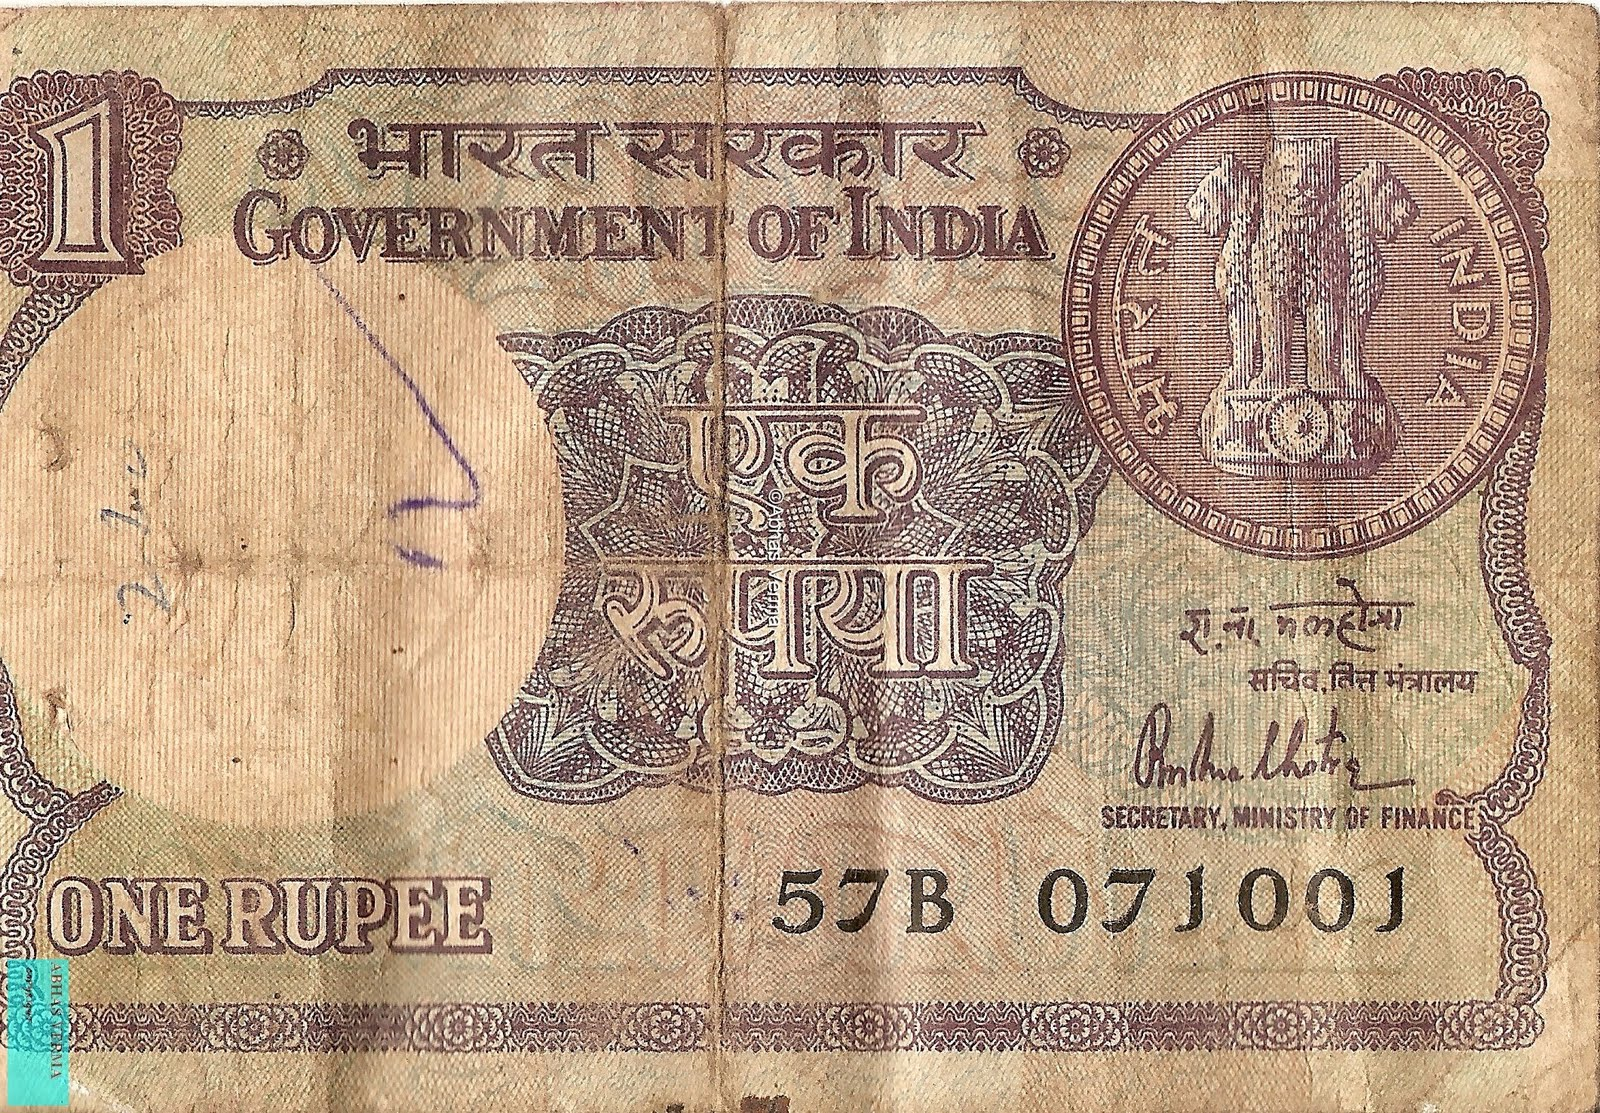 the indian rupee crisis economics essay The reasons for this abysmal and deplorable downfall of the value of indian rupee were many – however, the two major reasons were: 1 the almost, if not complete, policy – paralysis of the erstwhile indian government – both in terms of governance and policy implementation and reform measures, and 2.